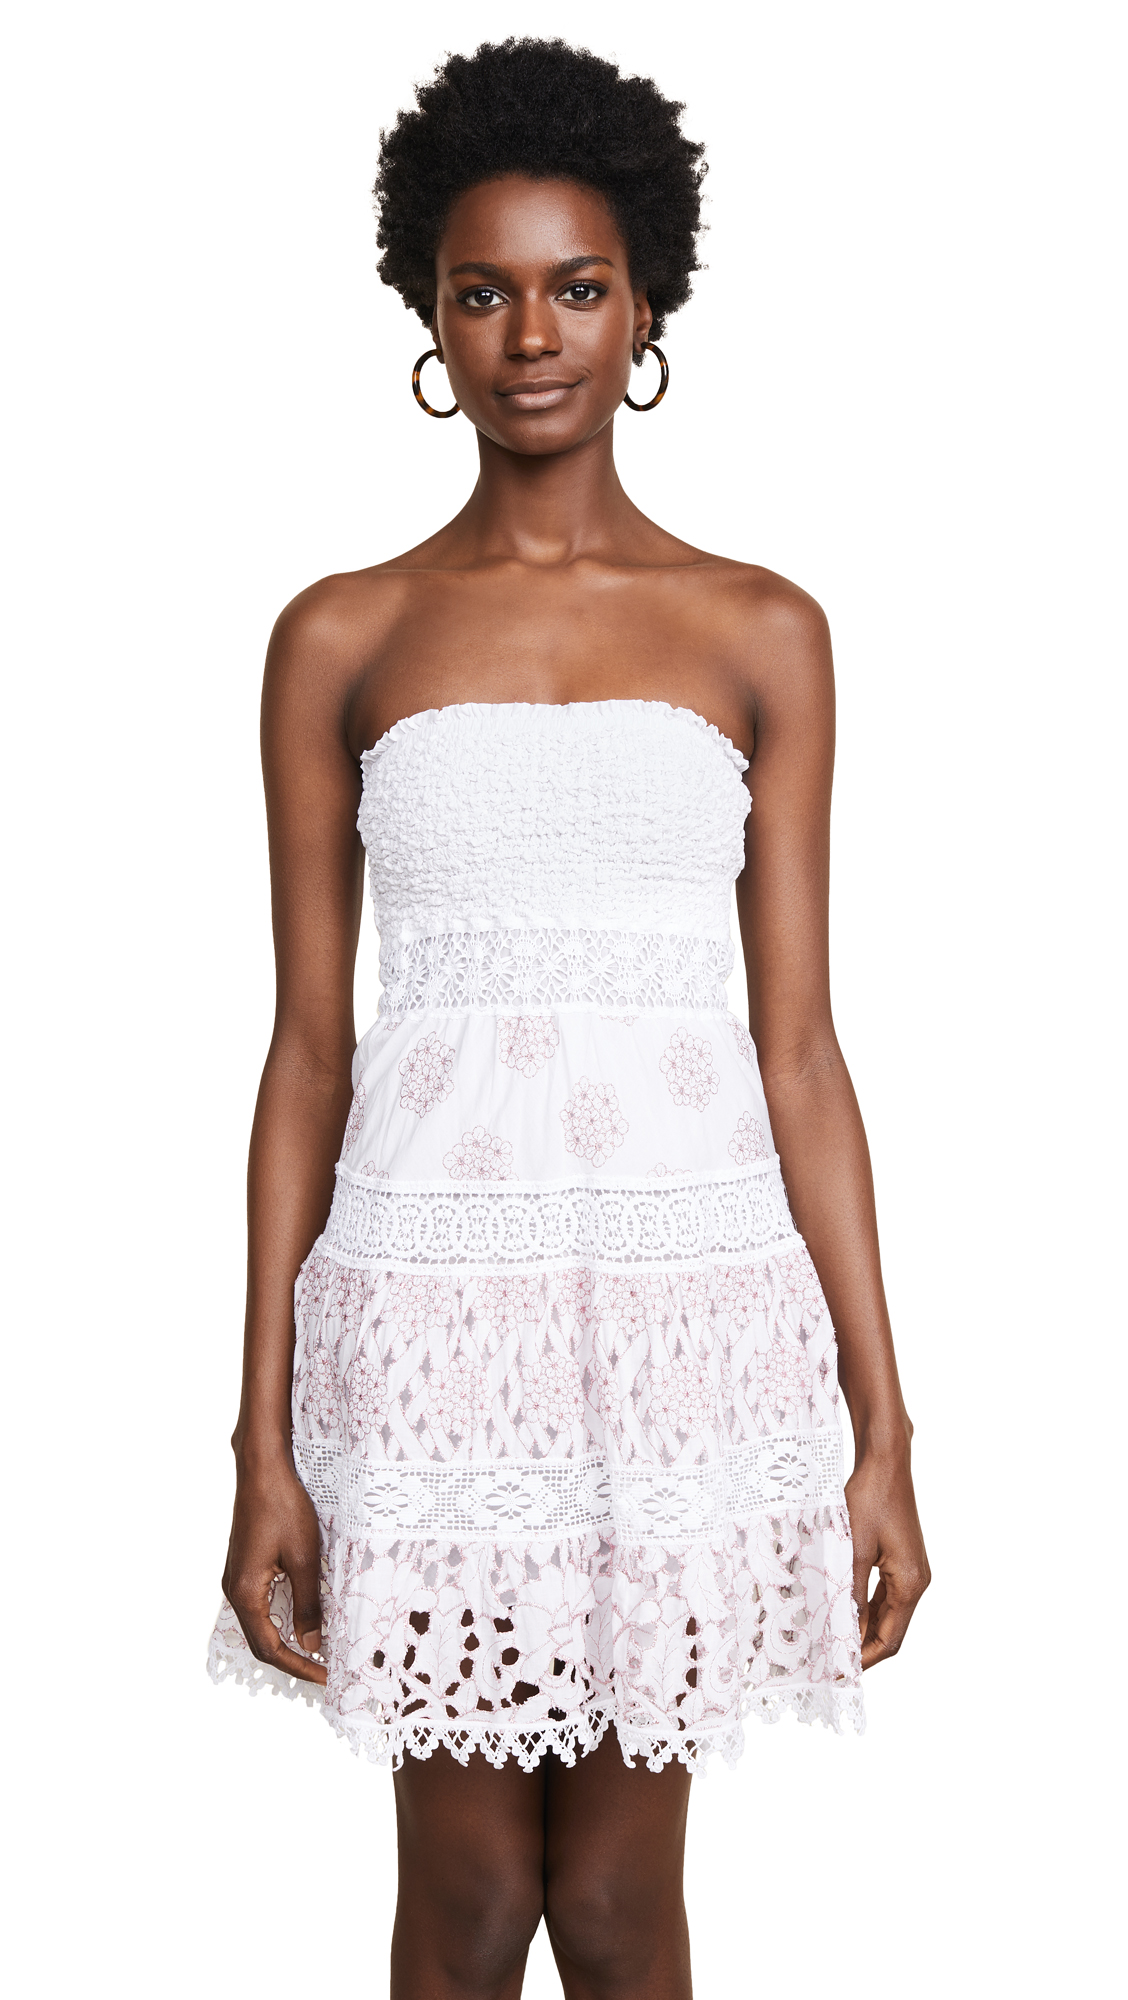 Temptation Positano Giava Ruched Dress In Bianco